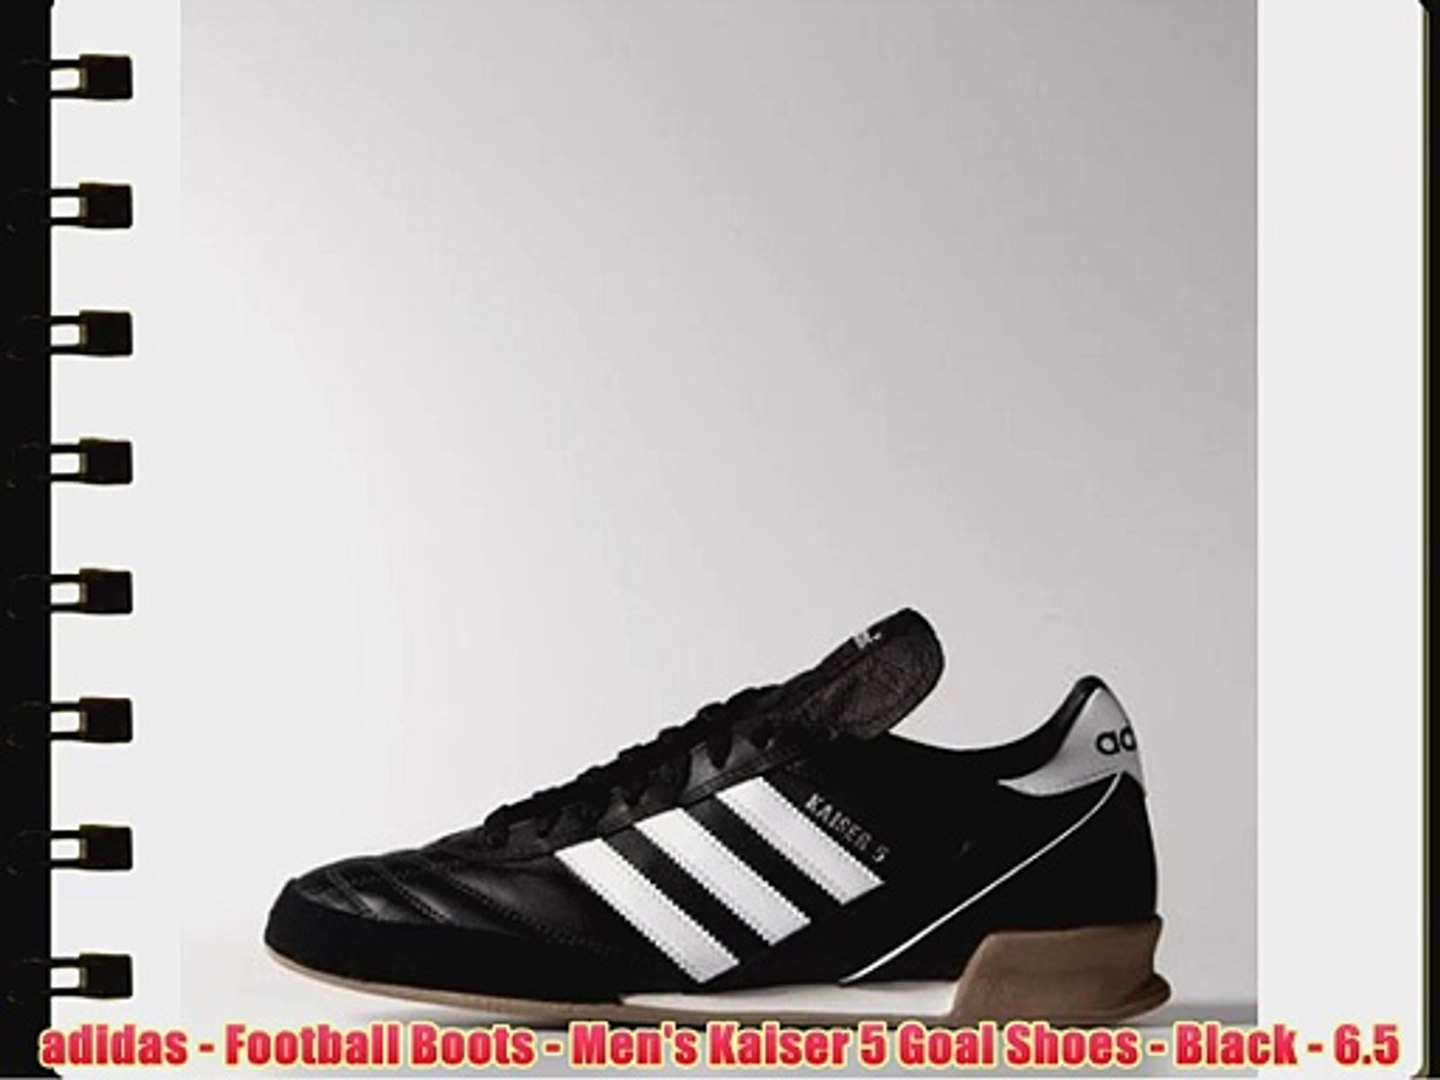 adidas Football Boots Men's Kaiser 5 Goal Shoes Black 6.5